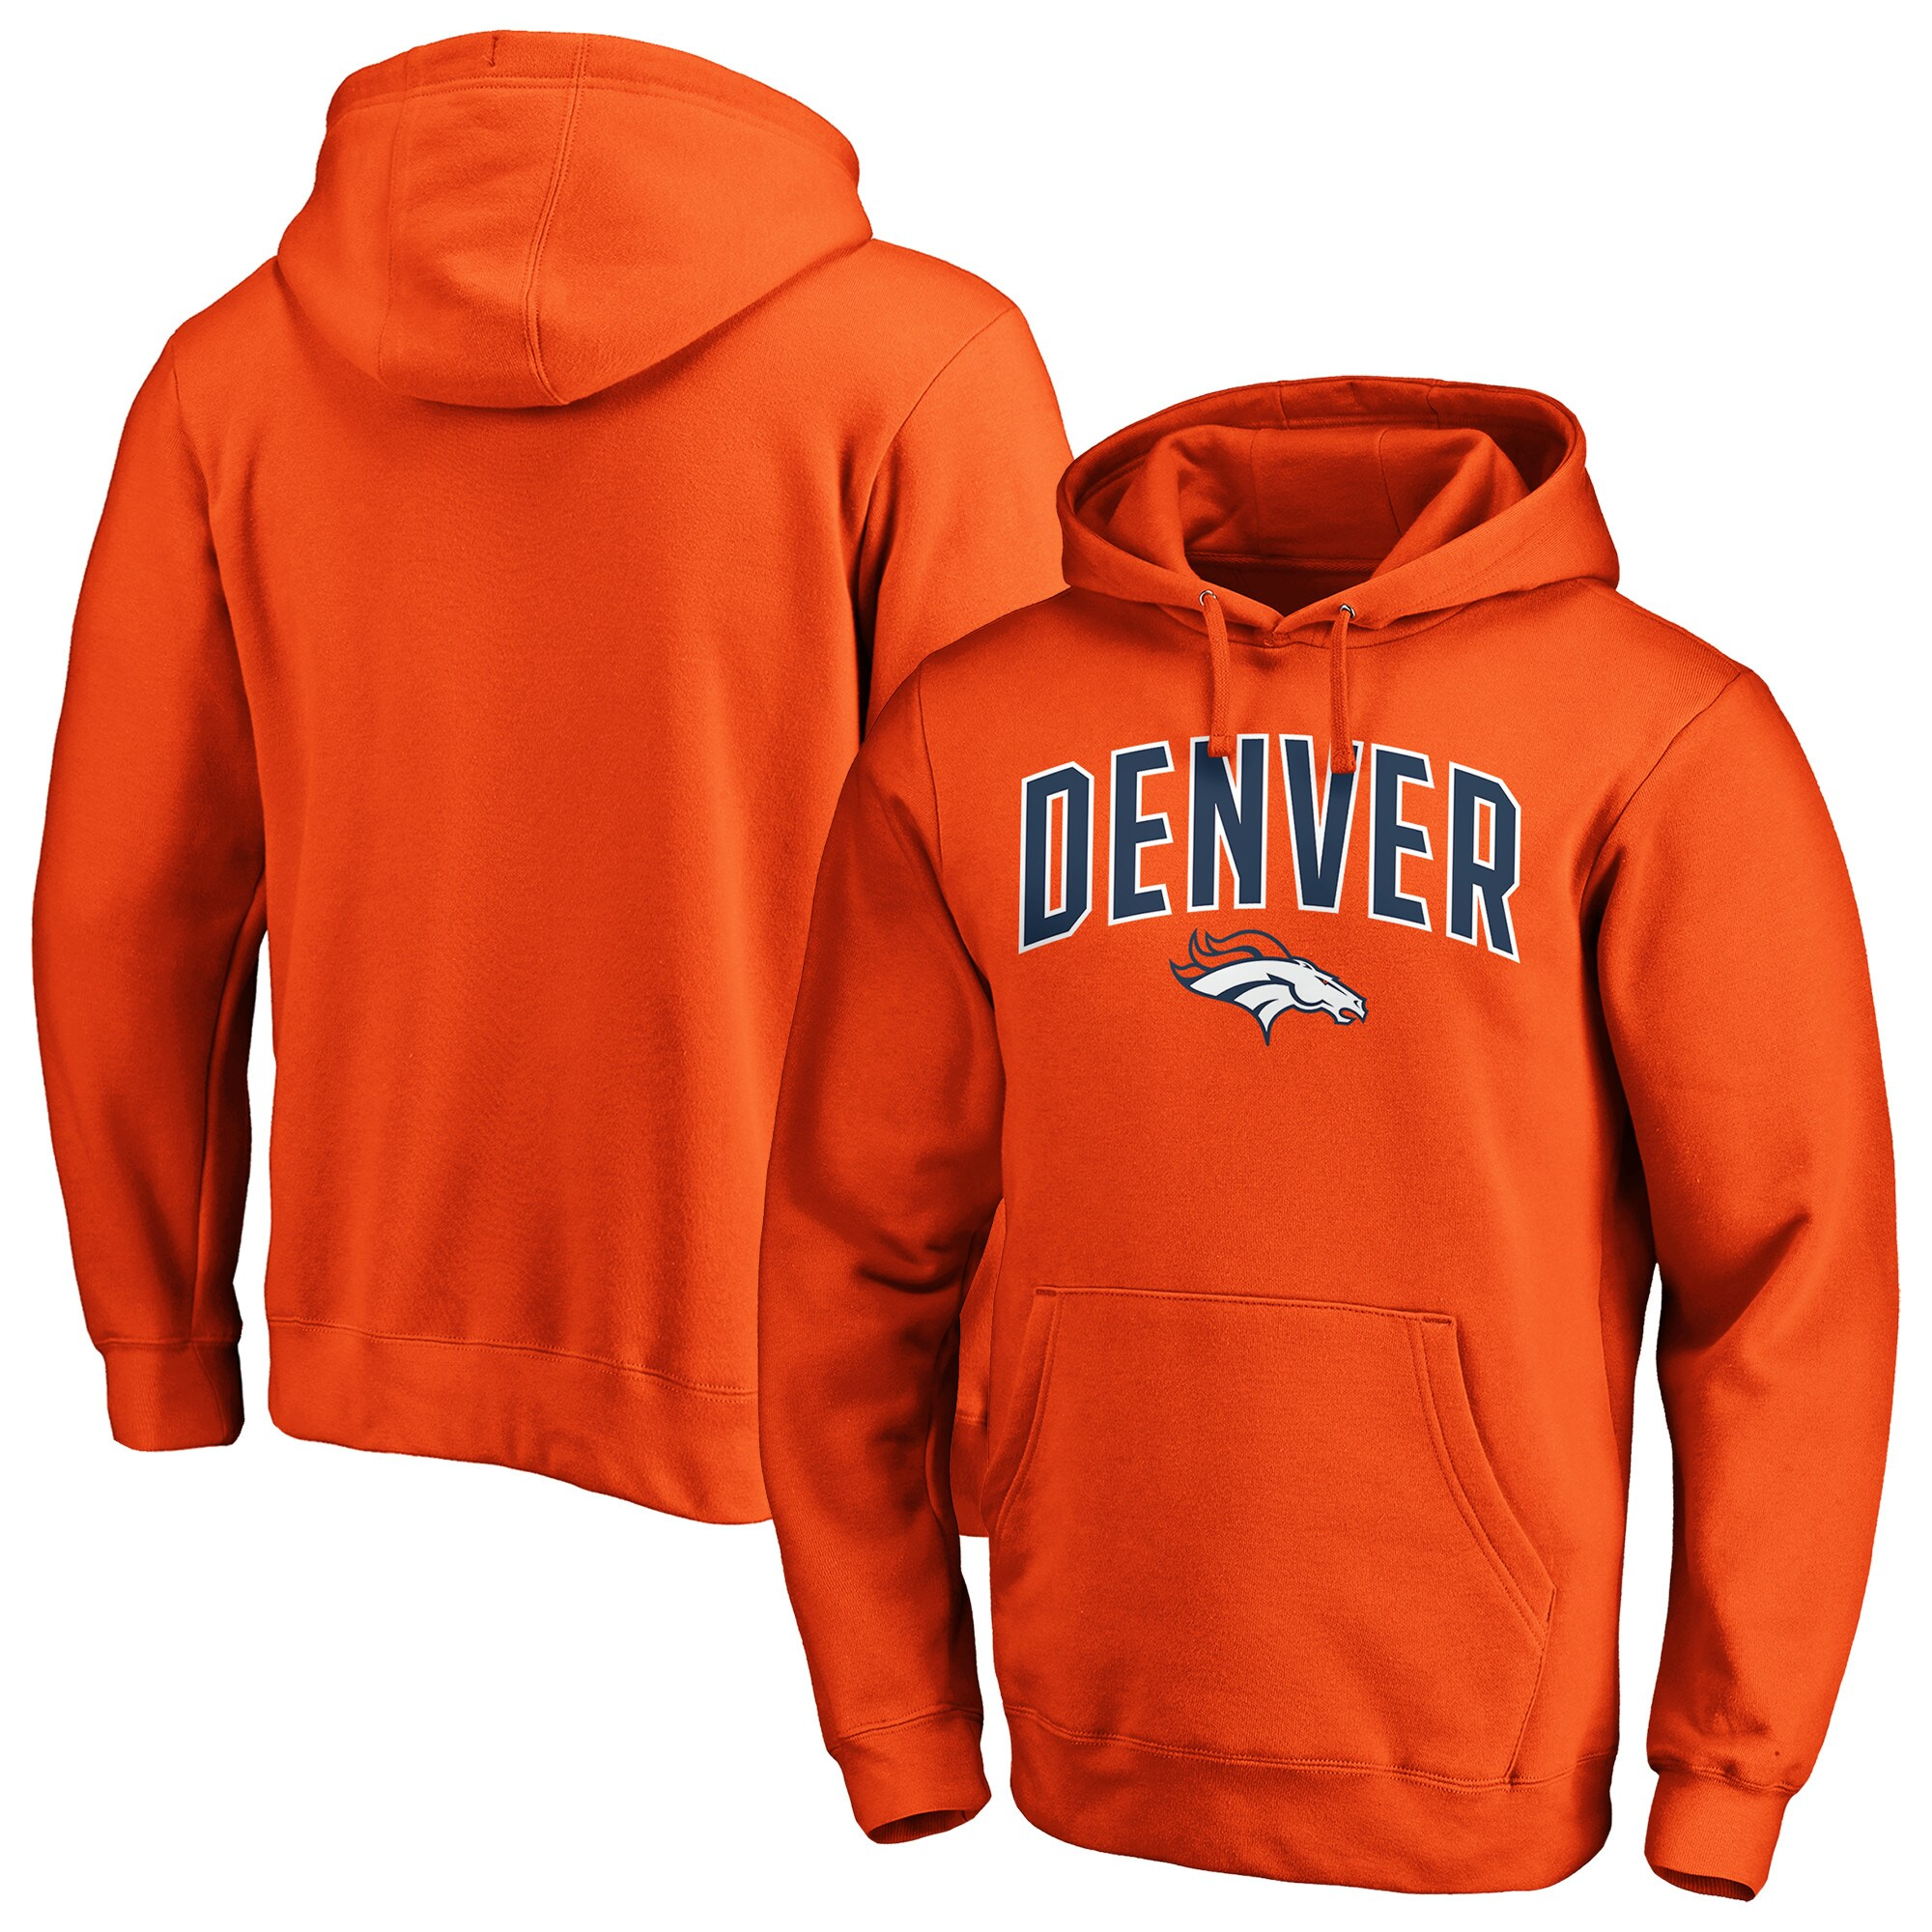 Denver Broncos NFL Pro Line by Fanatics Branded Iconic Engage Arch Pullover Hoodie - Orange